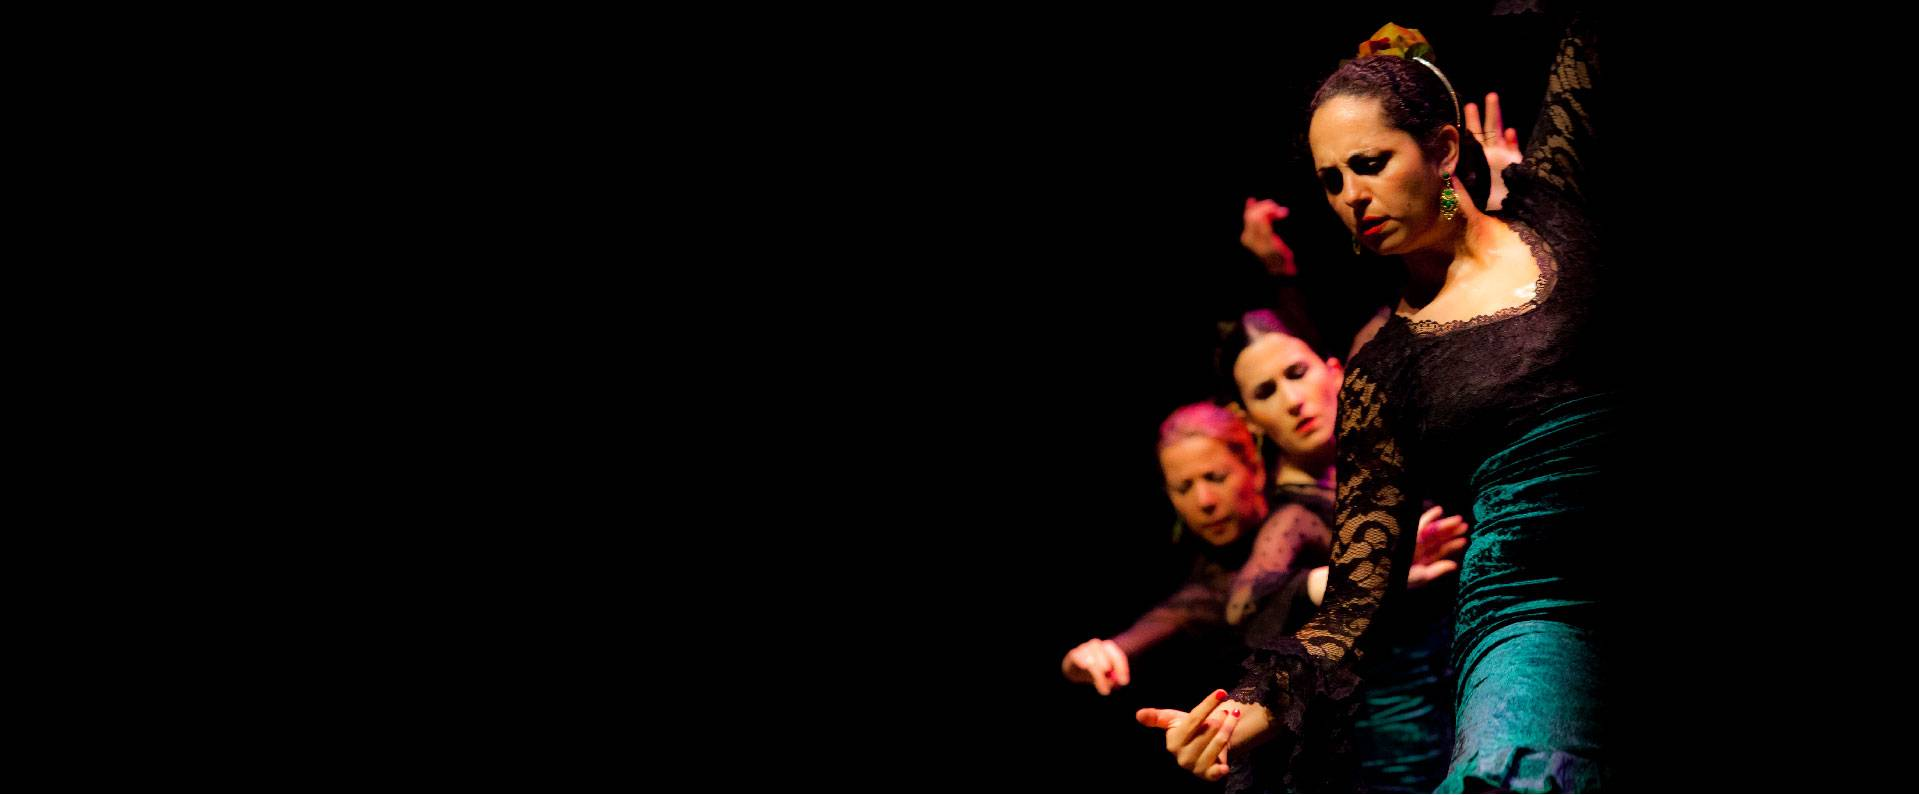 cursos intensivos de flamenco